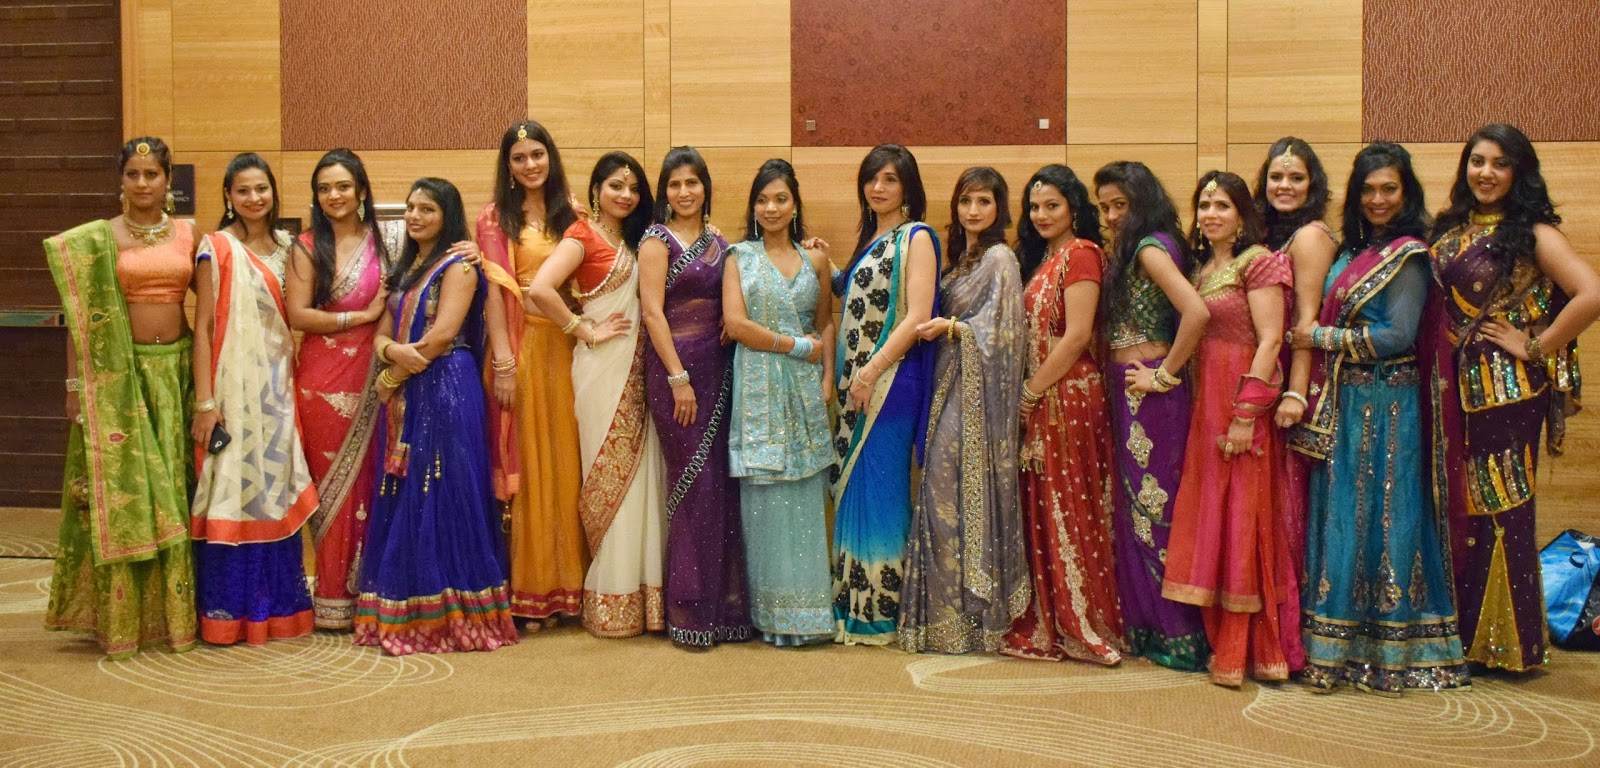 Ananya in saree, Ananya with her friends, Ananya in Sari, Seattle Fashion show, Hyatt Seattle Fashion Show, Authentic Indian wear, Fashion show in Seattle, Seattle Desi Fashion Show